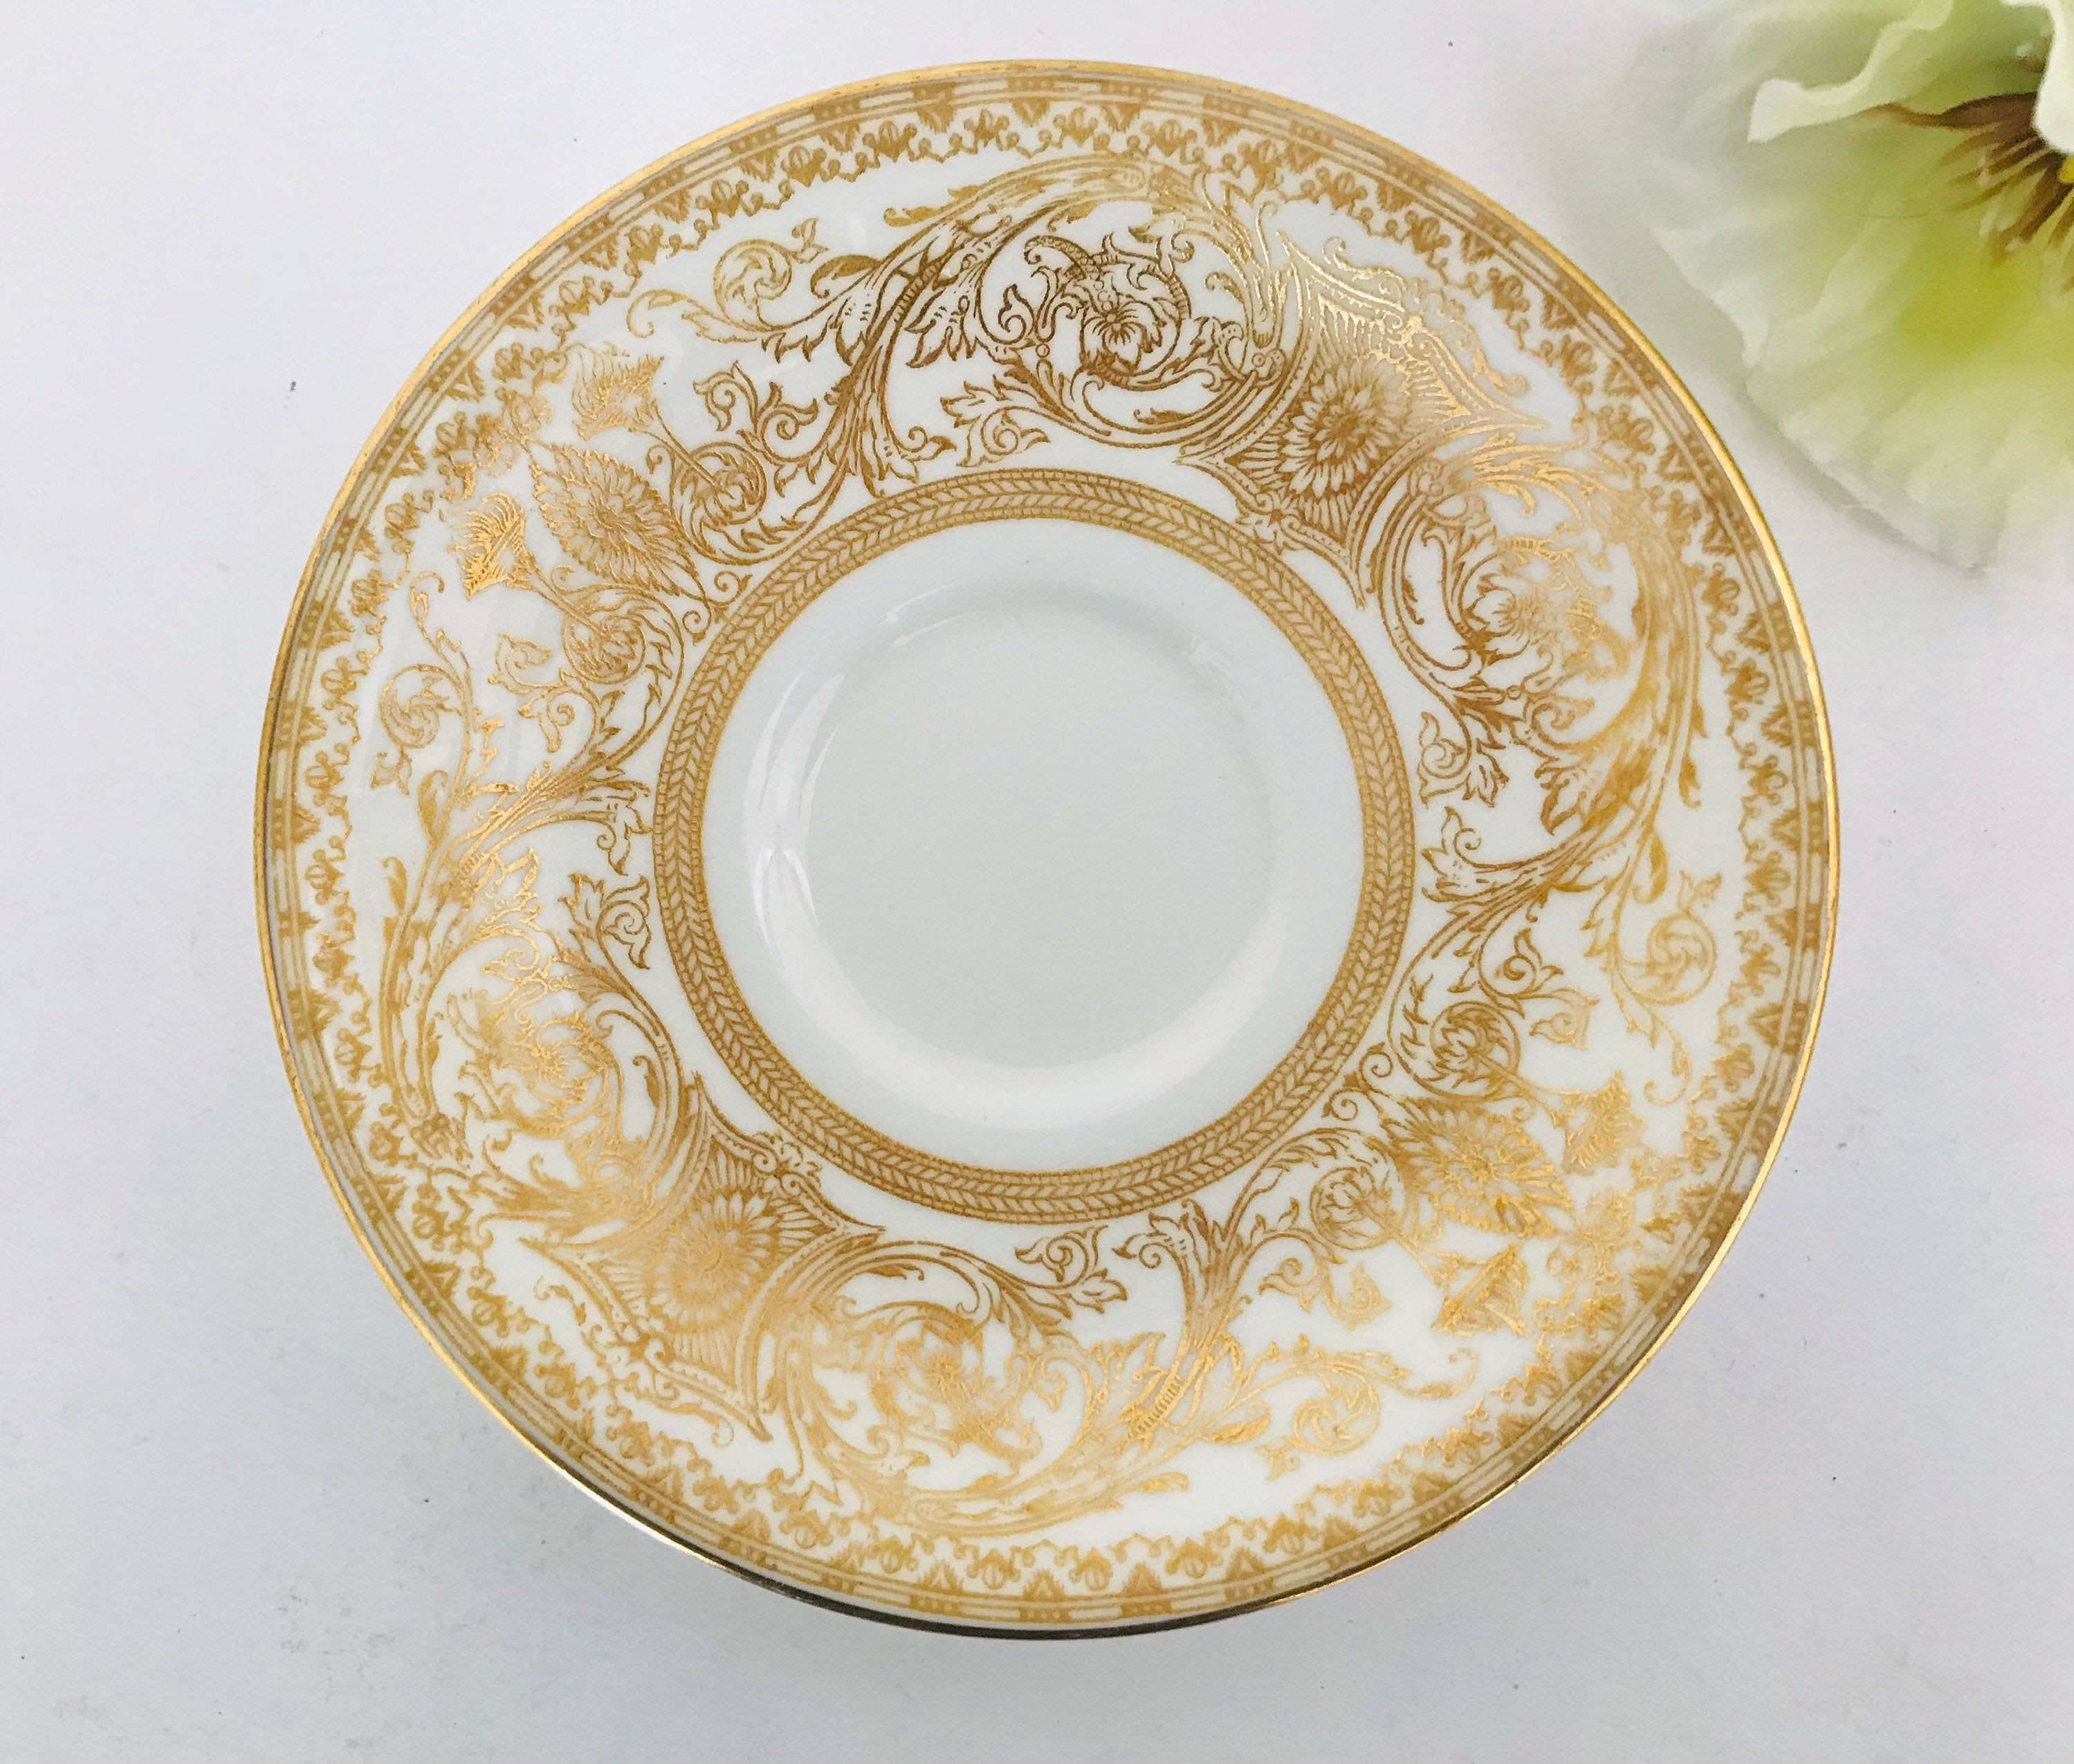 Pretty Vintage Royal Albert Autumn Roses 10.5 Dinner Plate Pink Peach Lilac Roses 6 available listing more in this pattern